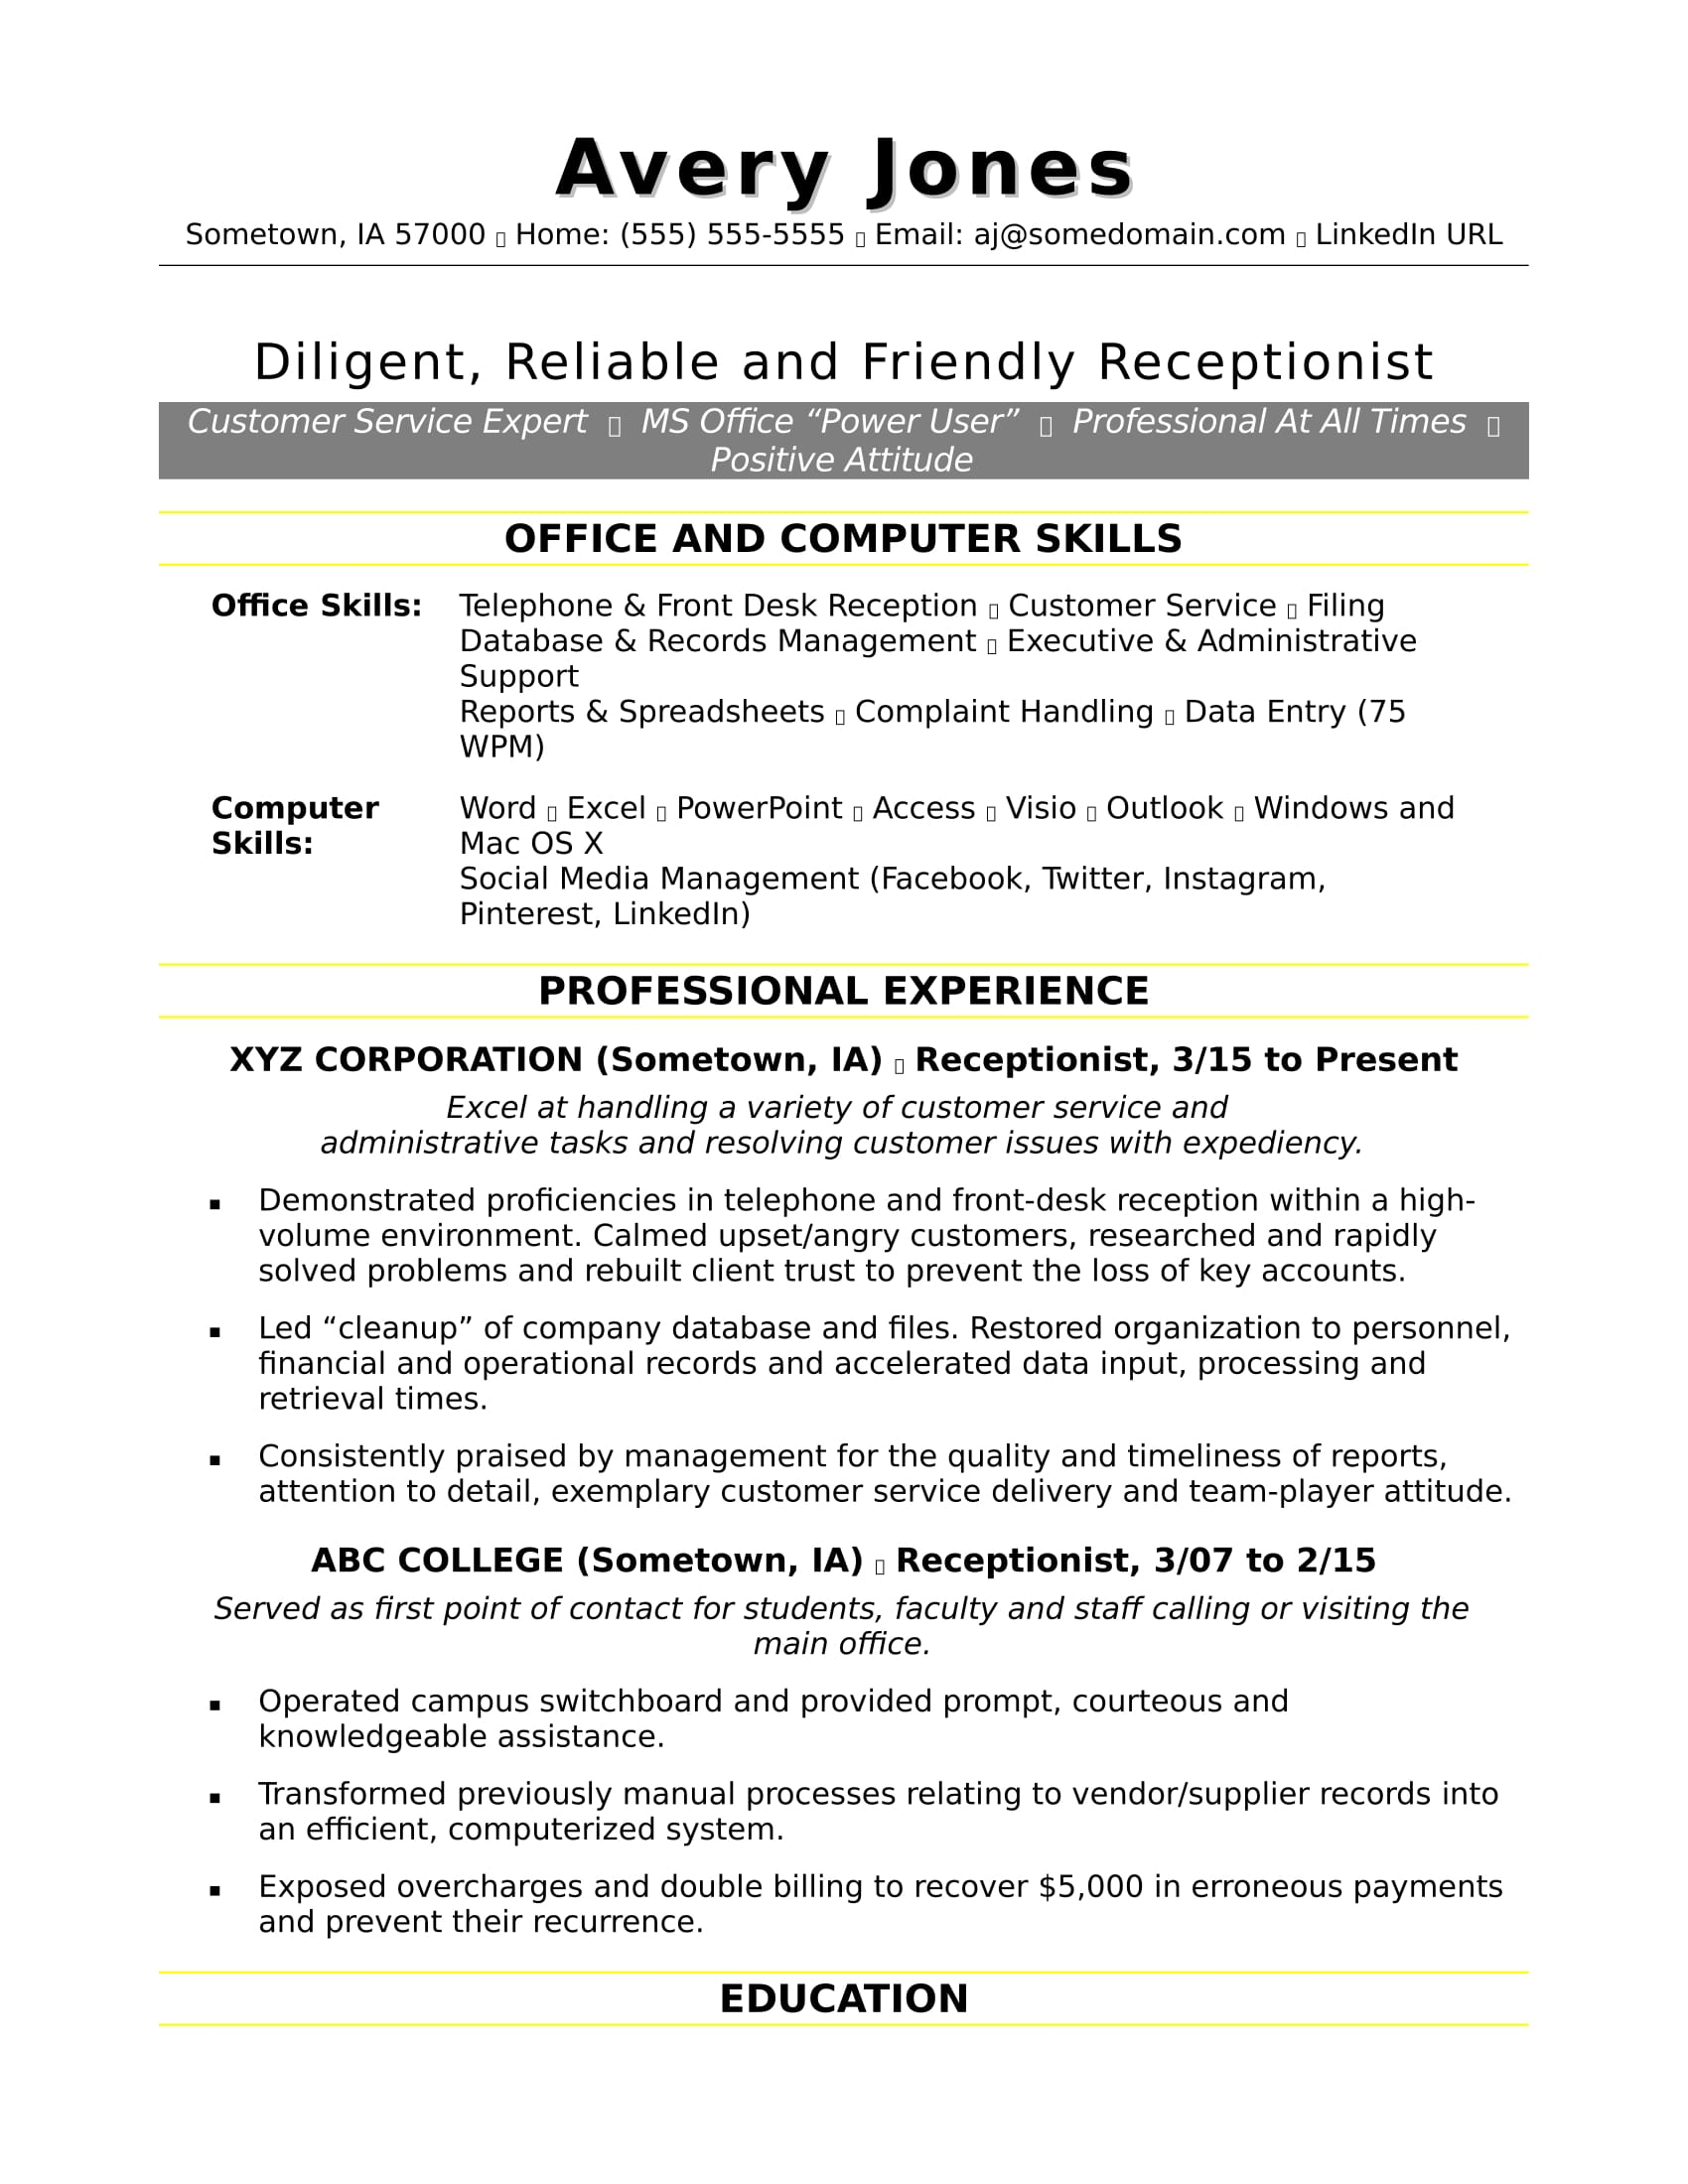 Receptionist Resume Templates | brandforesight.co